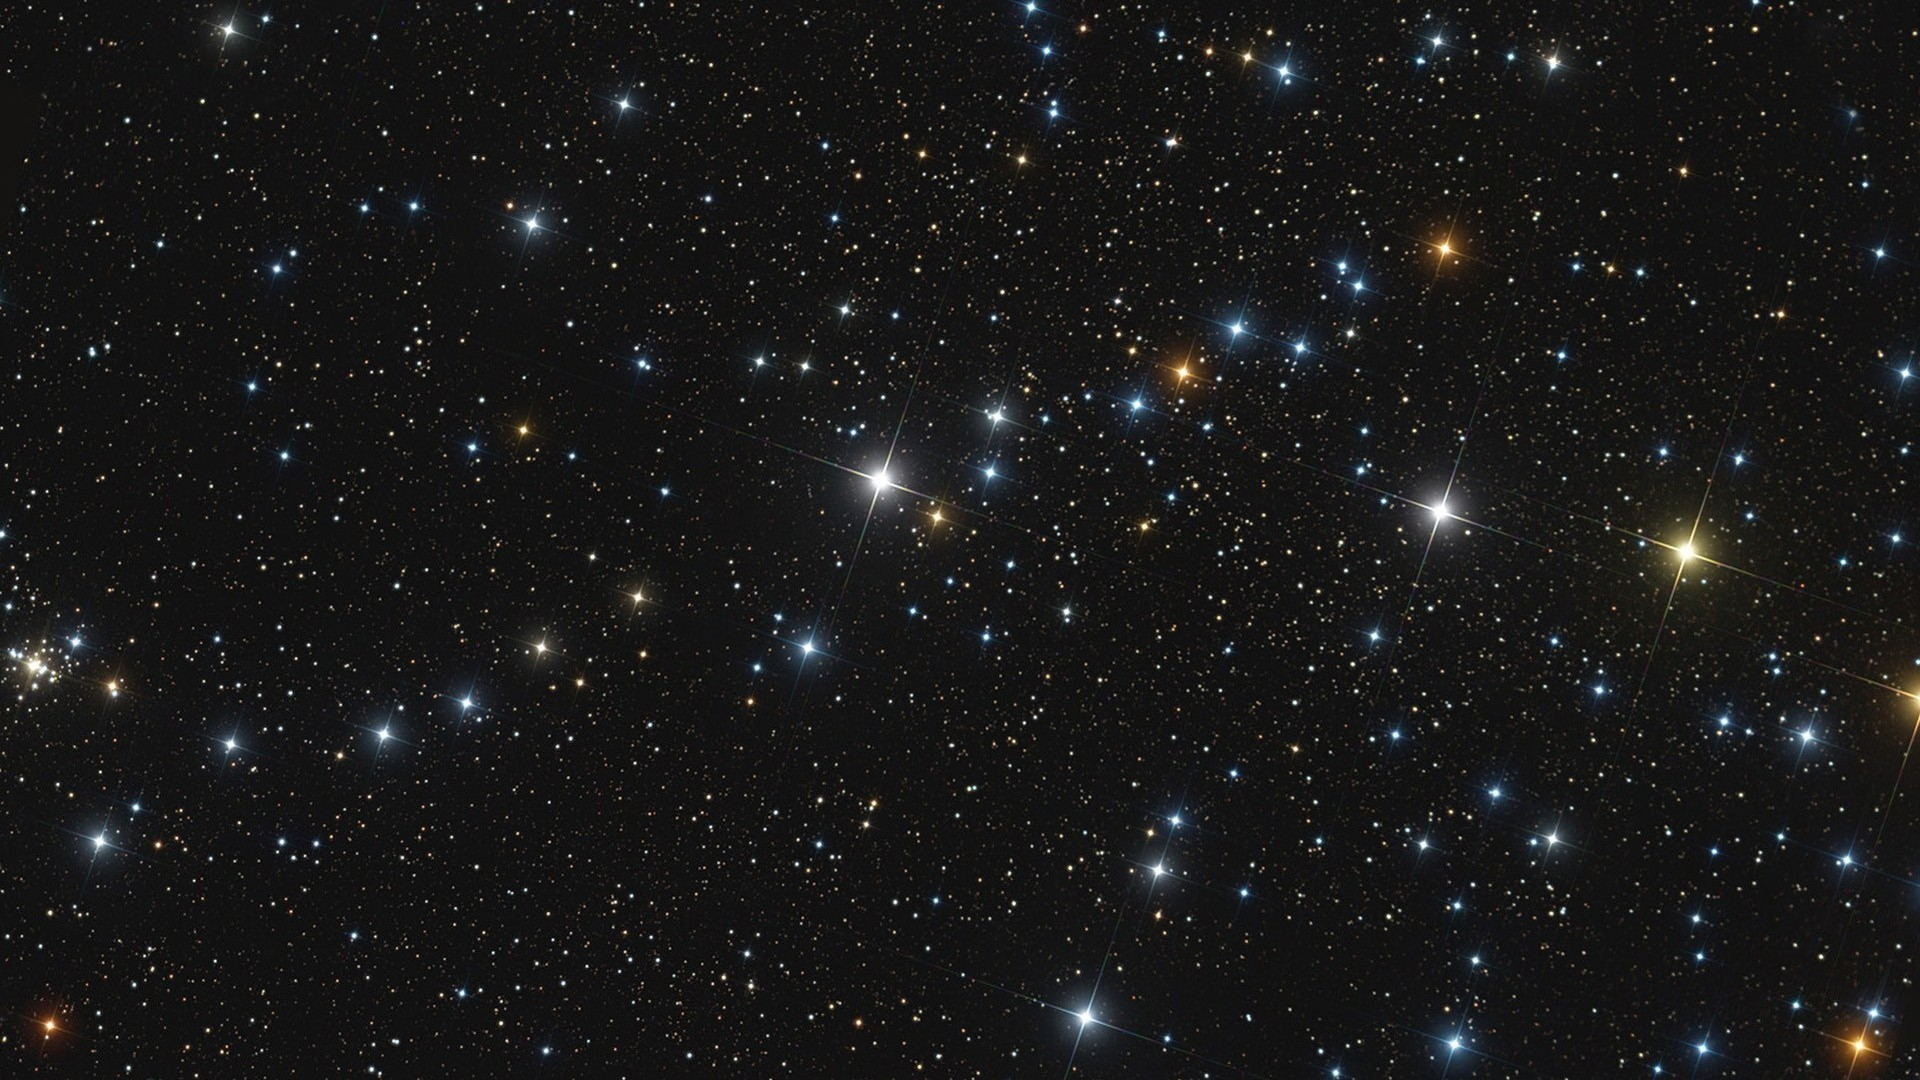 Stars in Space Background (53+ images)